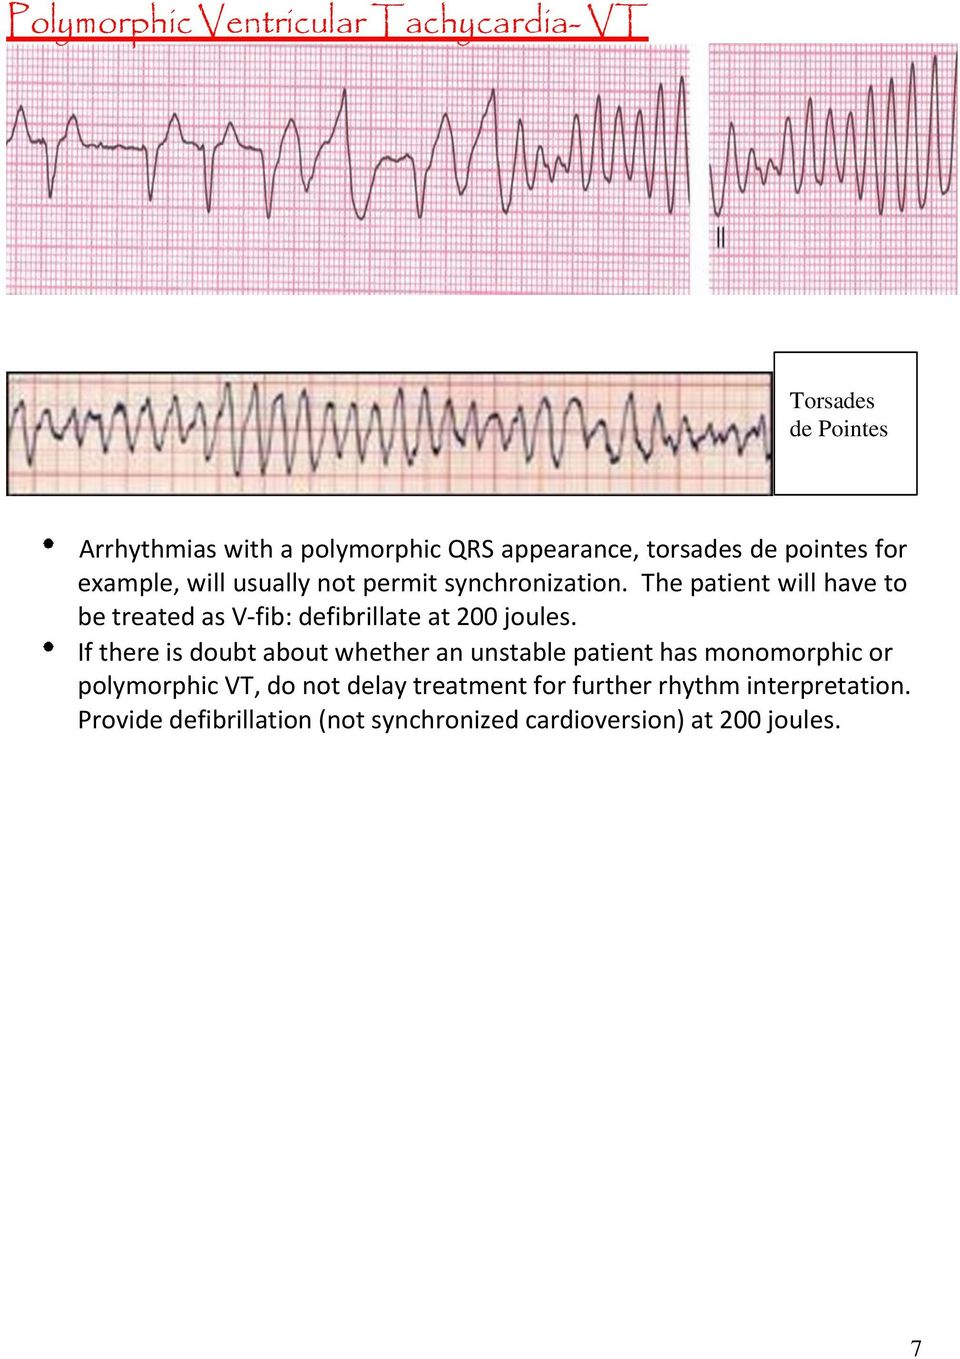 The patient will have to be treated as V-fib: defibrillate at 200 joules.